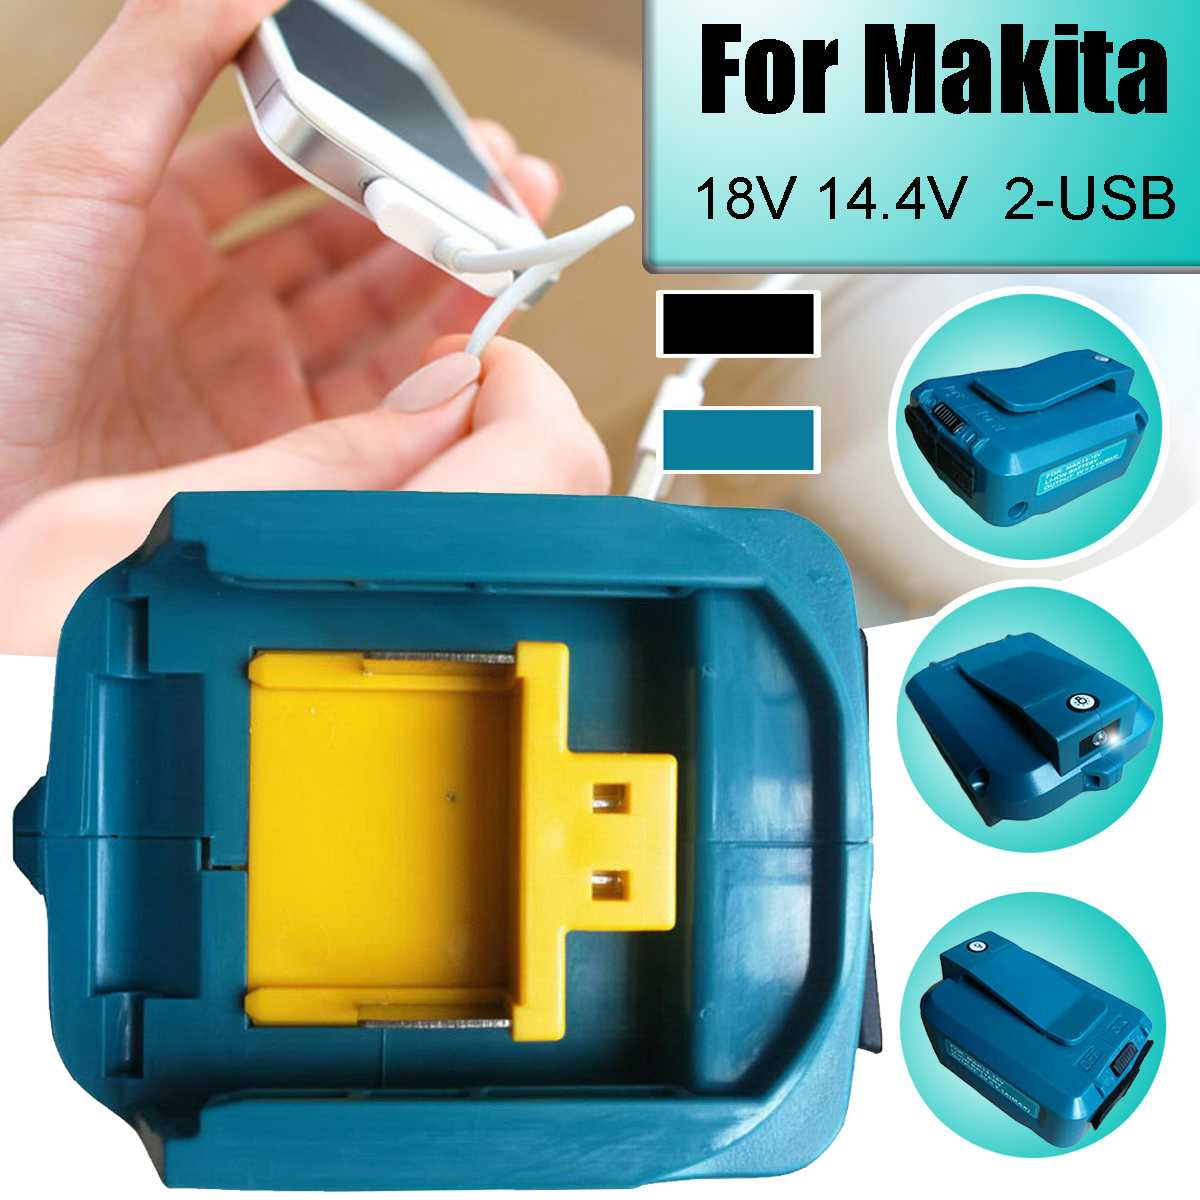 Portable USB Charging Adapter 2-USB For Makita Tools Charging Battery Adapter Power Charger For Mobile Phone Power Tool Battery